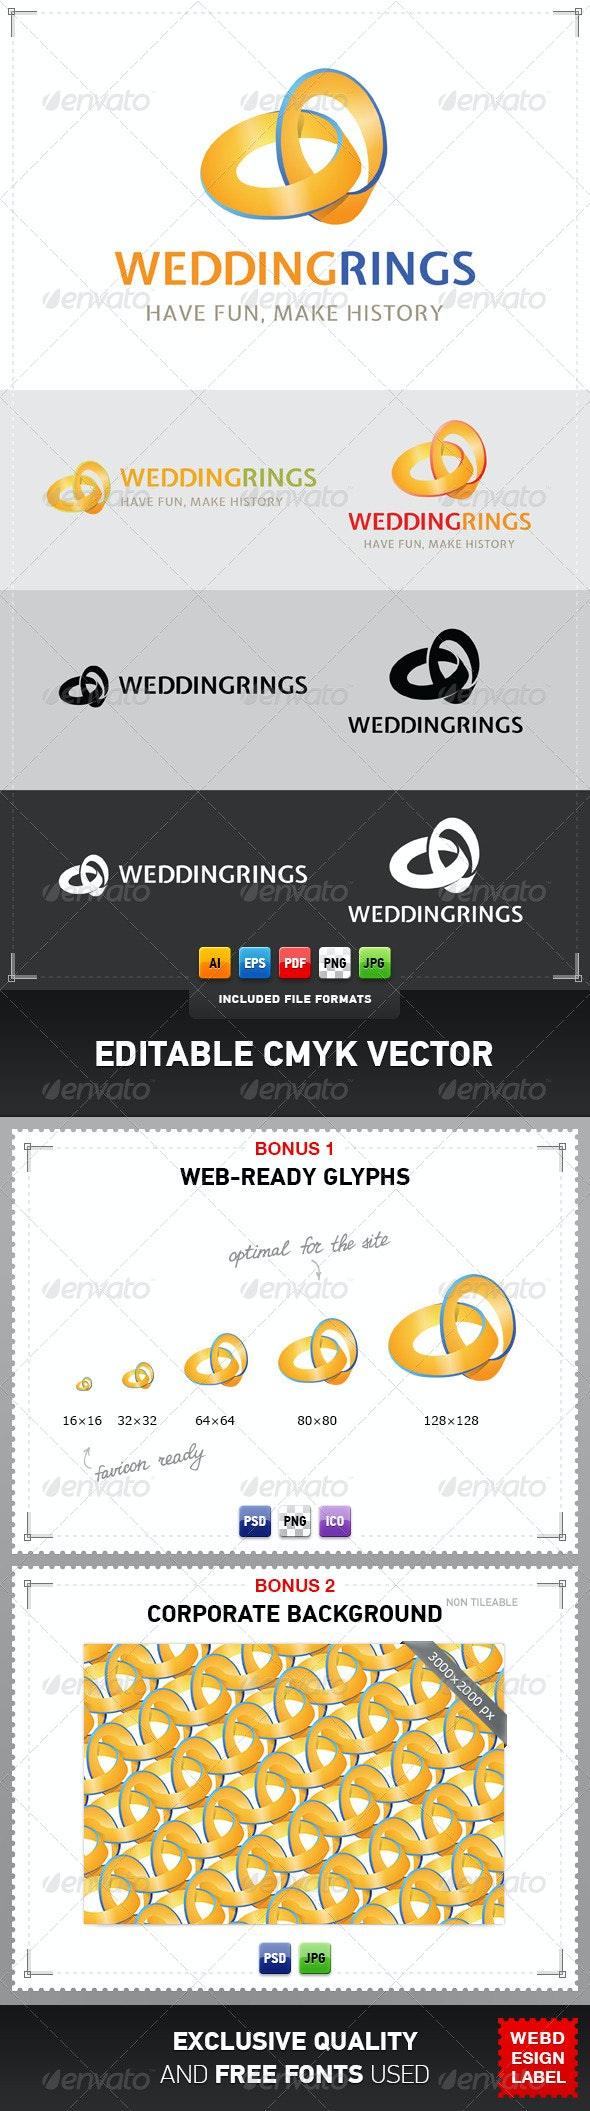 Wedding Rings Logo - Symbols Logo Templates